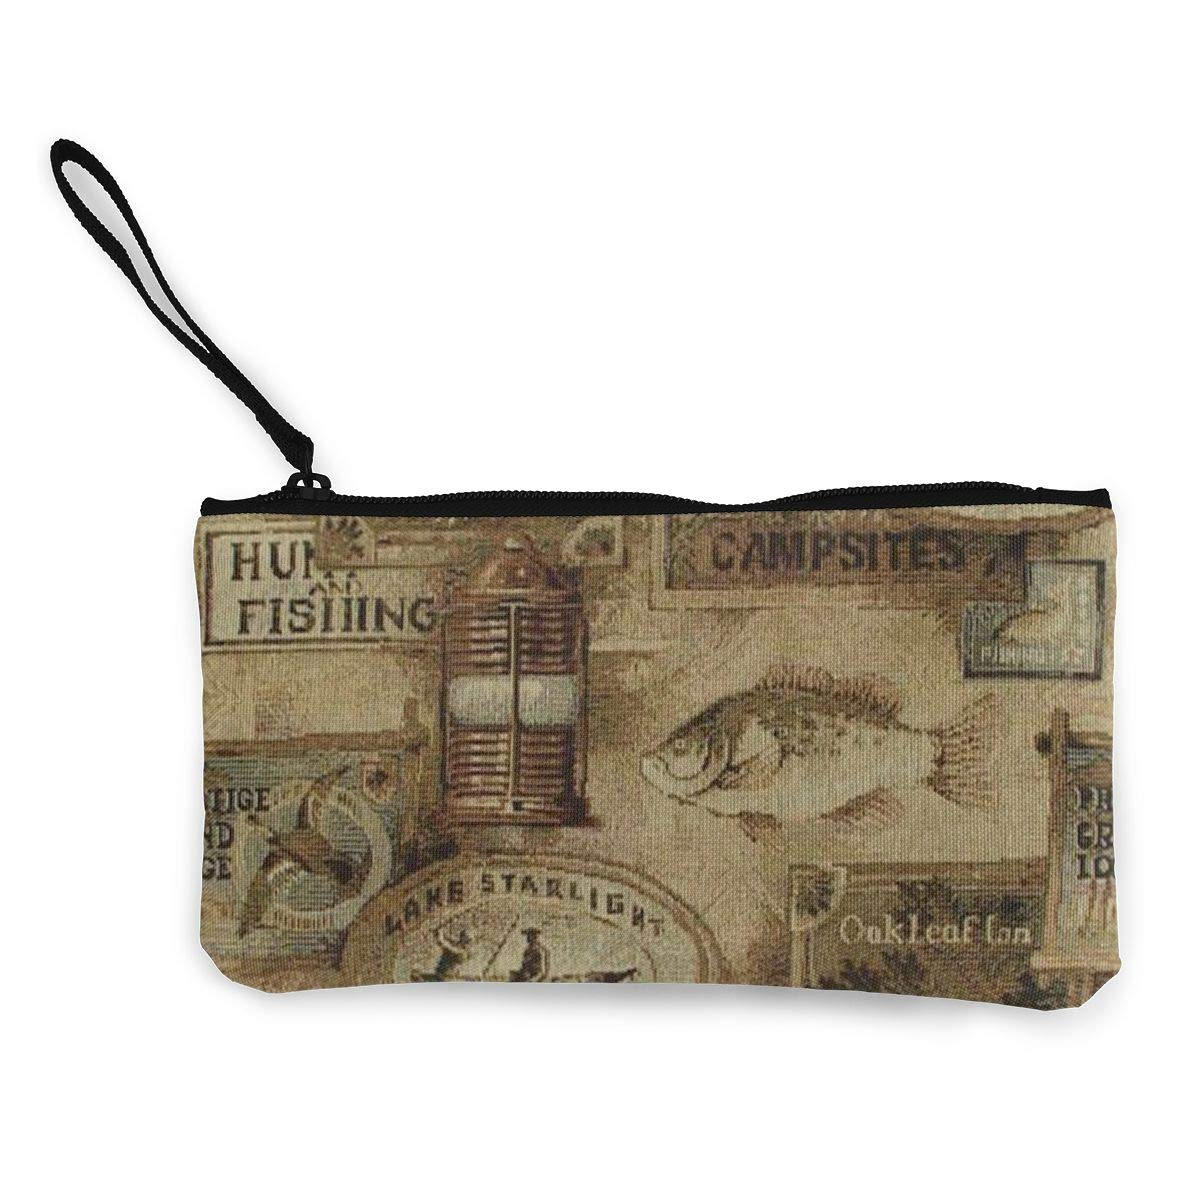 Make Up Bag Cellphone Bag With Handle DH14hjsdDEE Sunshine Zipper Canvas Coin Purse Wallet